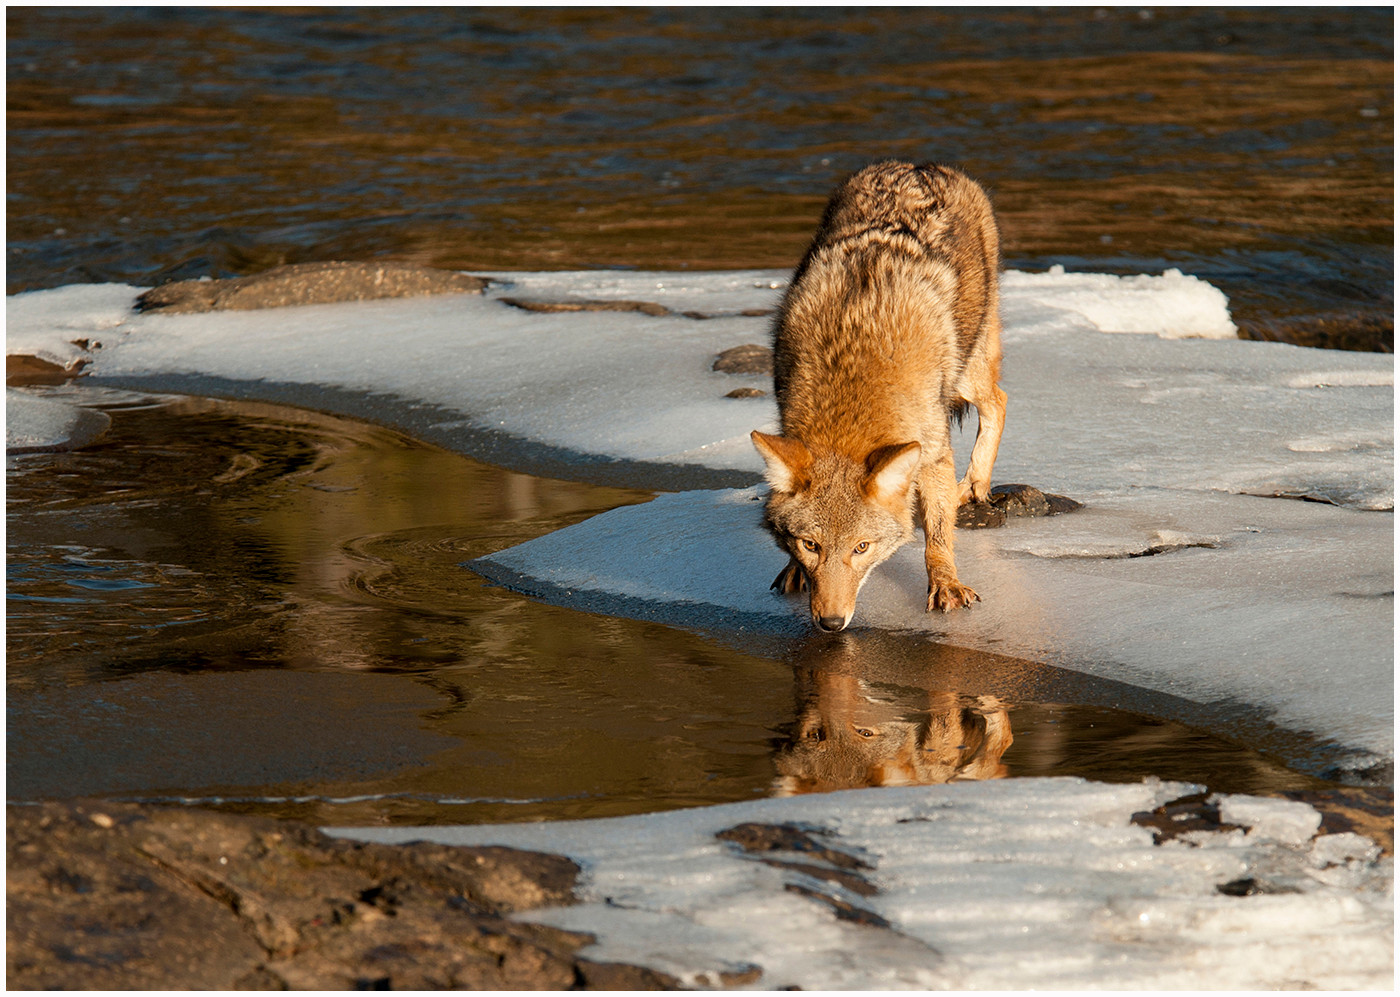 COLOUR - Coyote Drinking by Linda Cowen (17 marks)